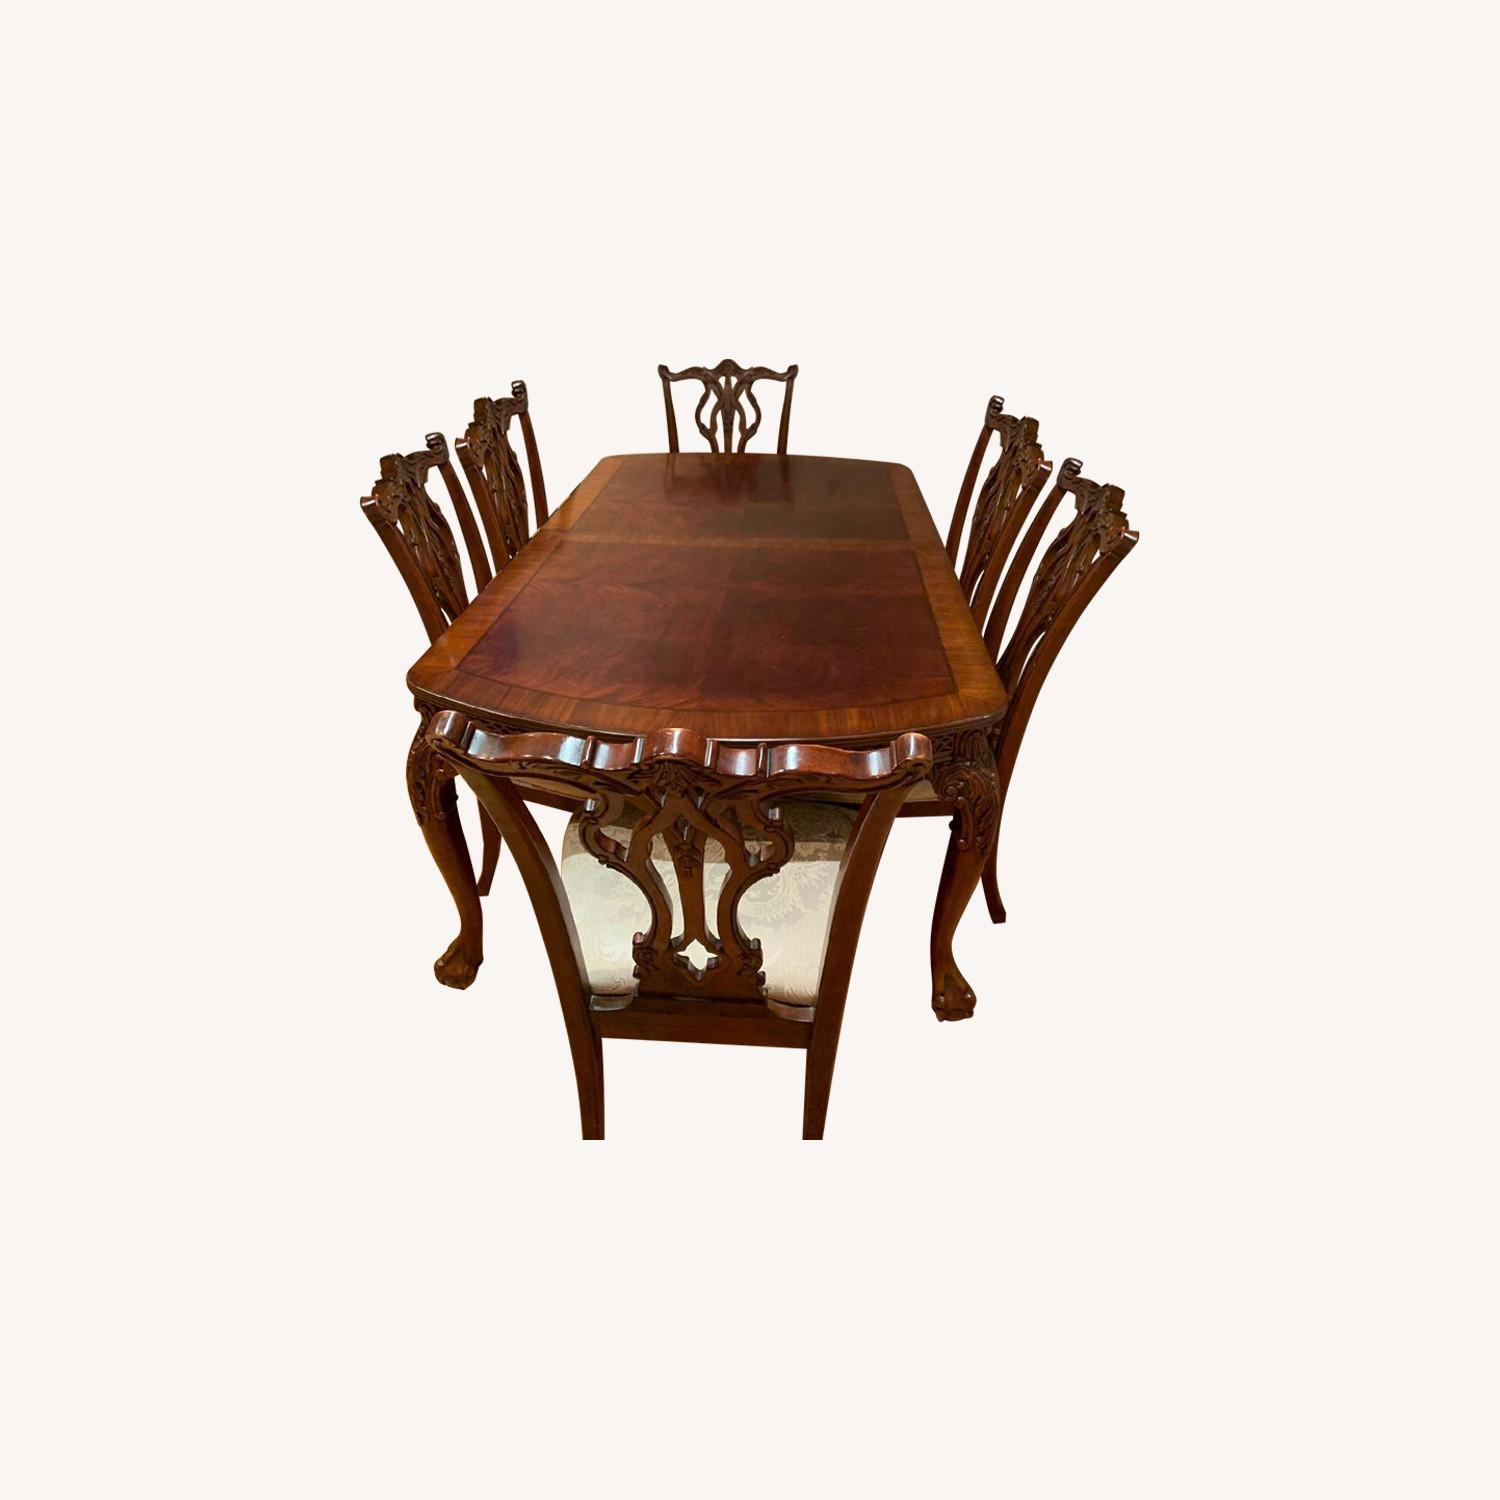 Traditional Wood Dining Table w/ 8 Chairs - image-0